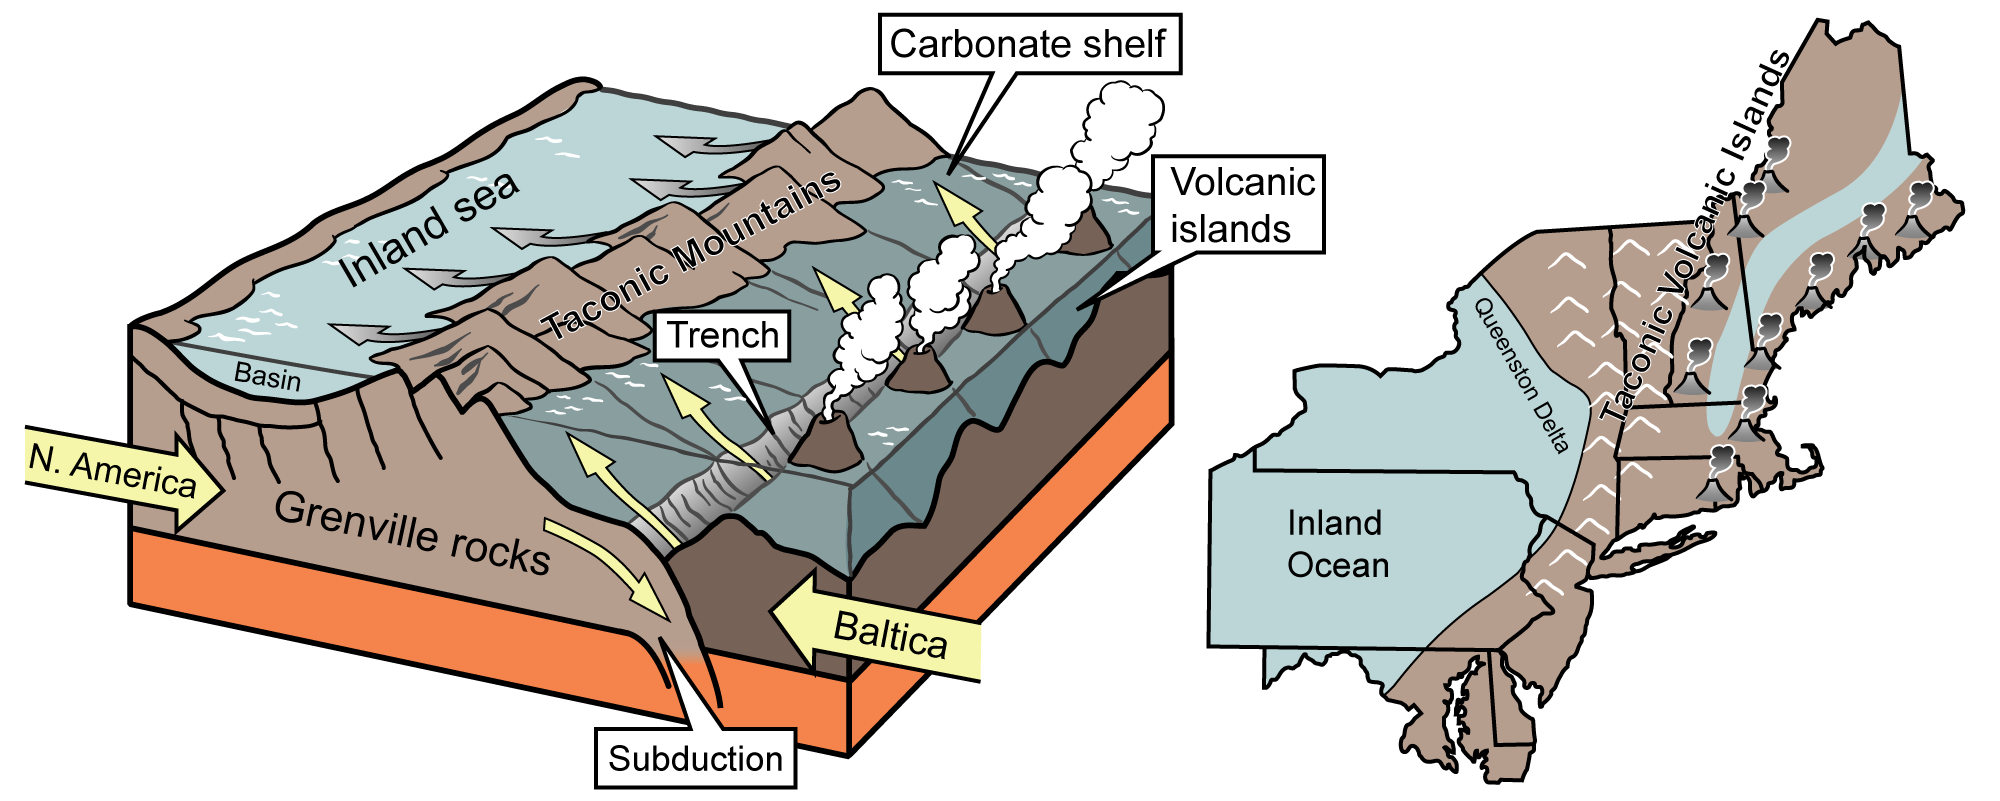 Two illustrations depicting the collision of the Taconic volcanic islands with the eastern margin of North America.